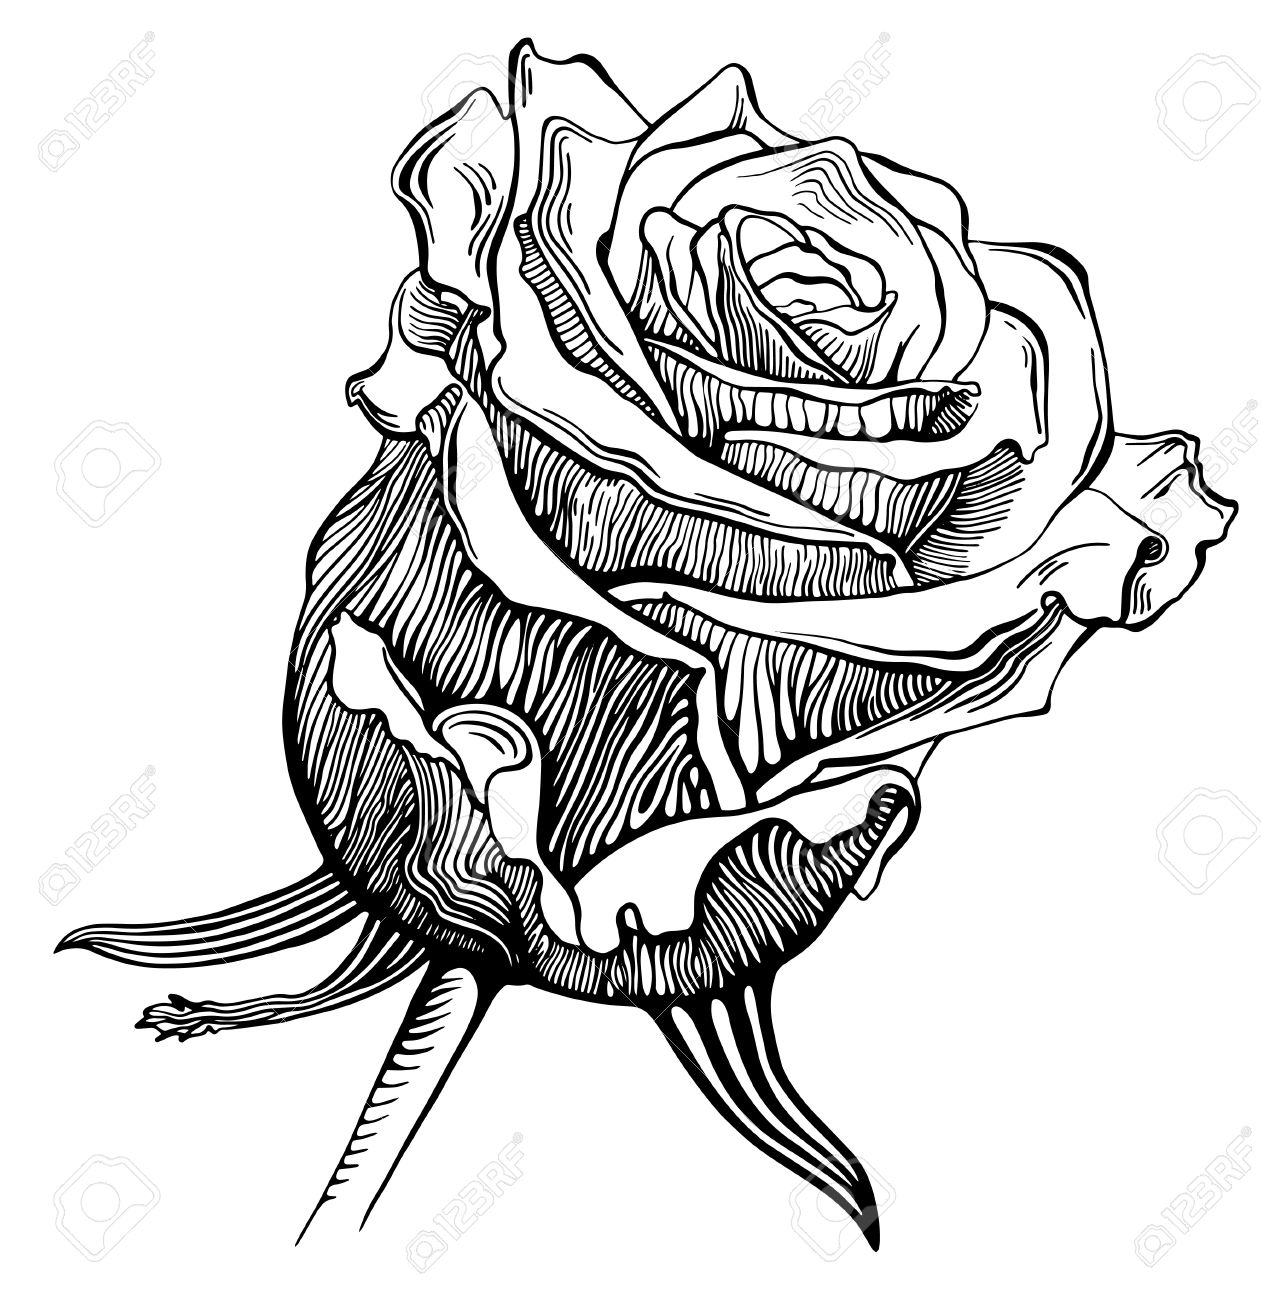 1261x1300 Black And White Digital Drawing Sketch Rose Royalty Free Cliparts